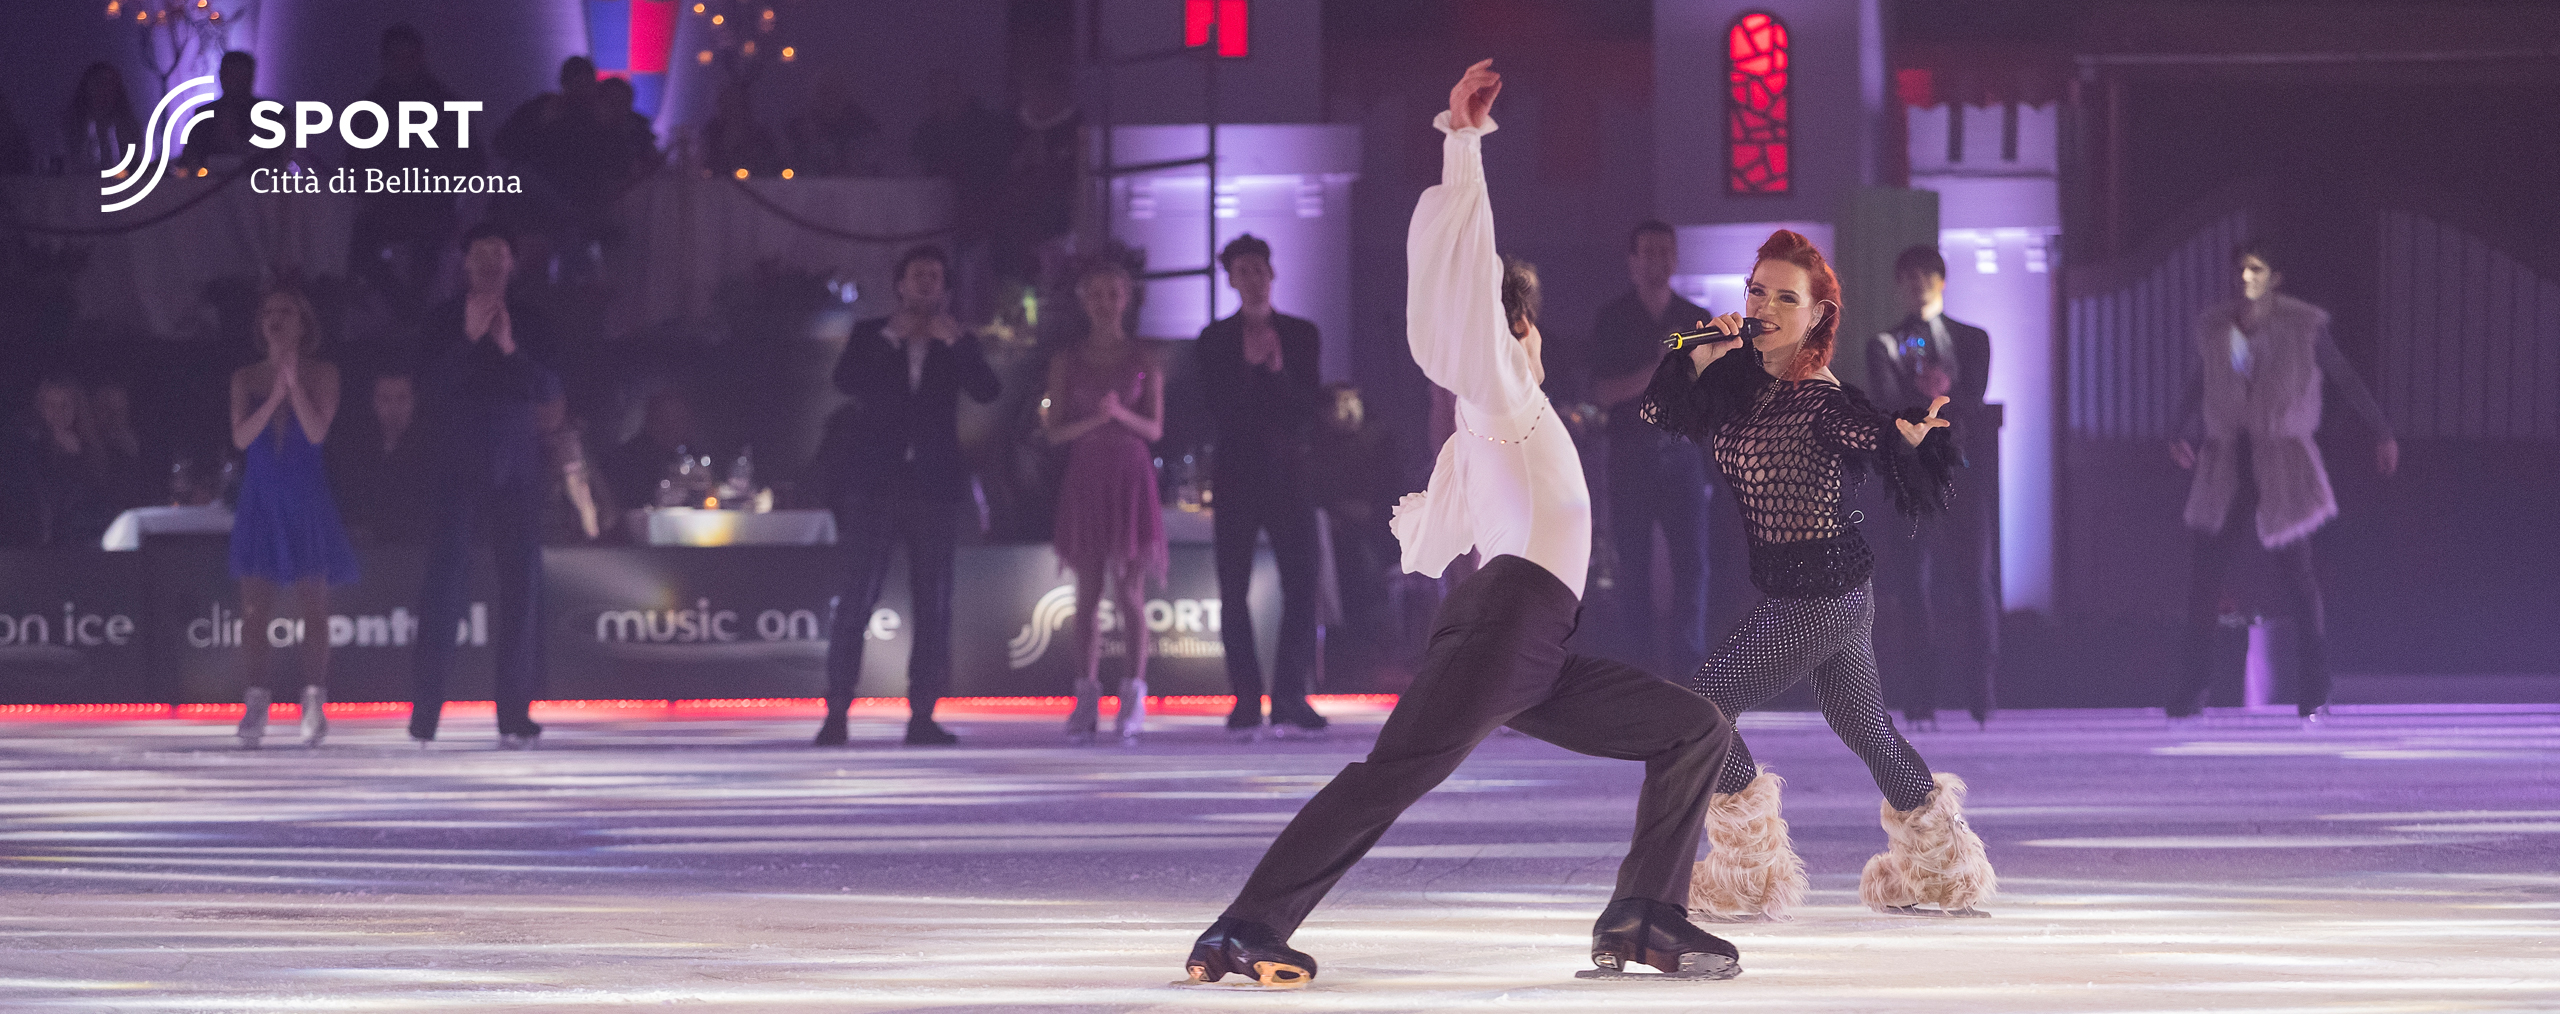 Scilla Hess & Stéphane Lambiel - Music on Ice